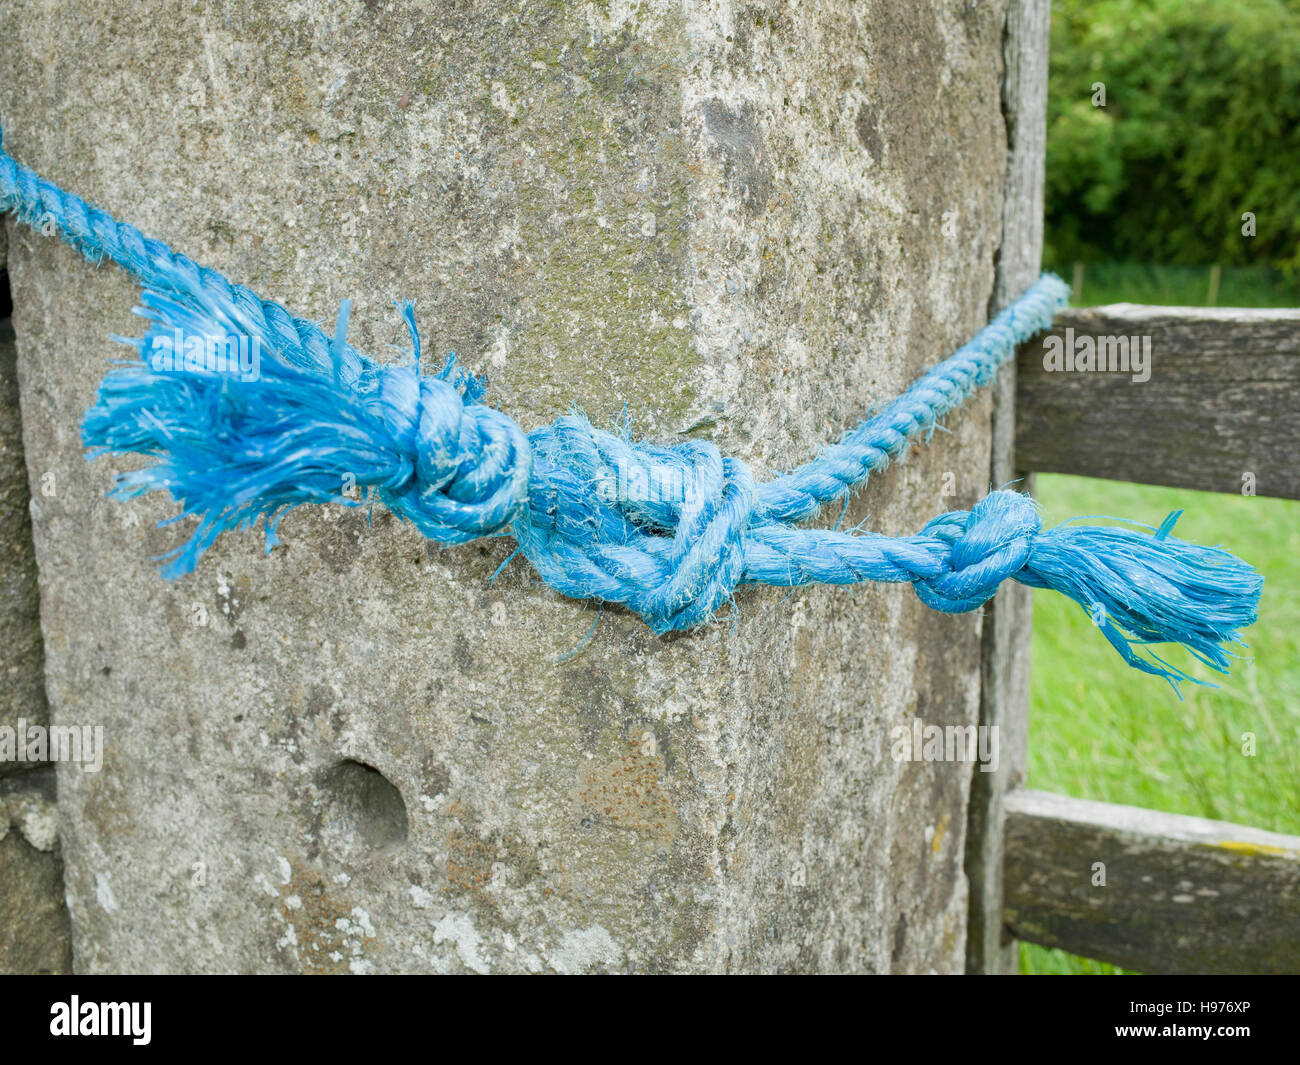 Knot in blue Nylon Rope - Stock Image